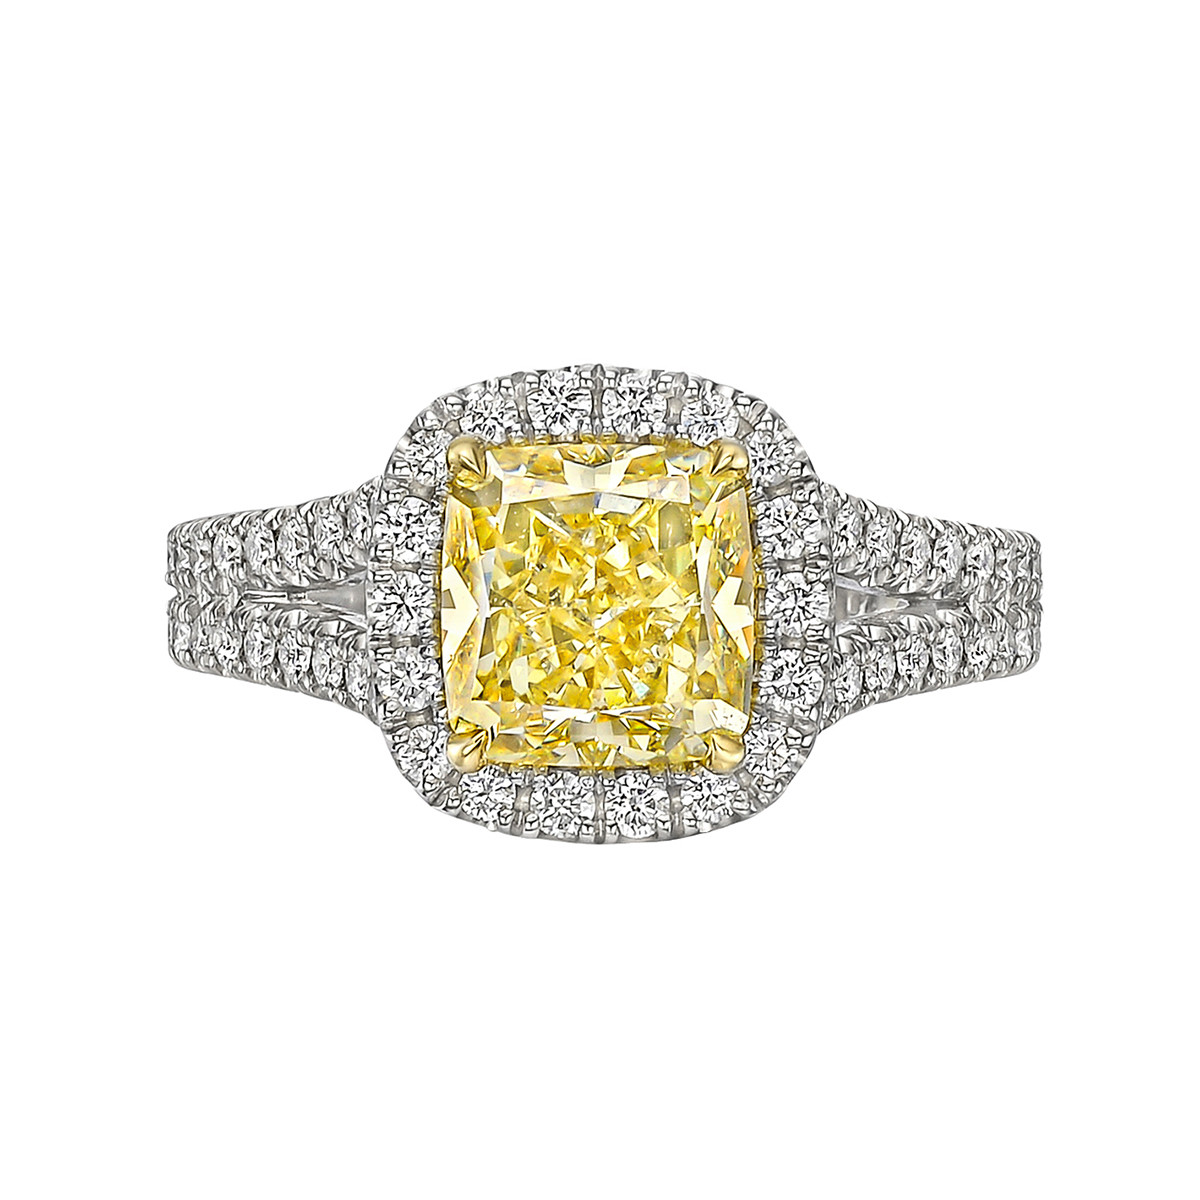 2.01ct Fancy Intense Yellow Diamond Ring (VS1)